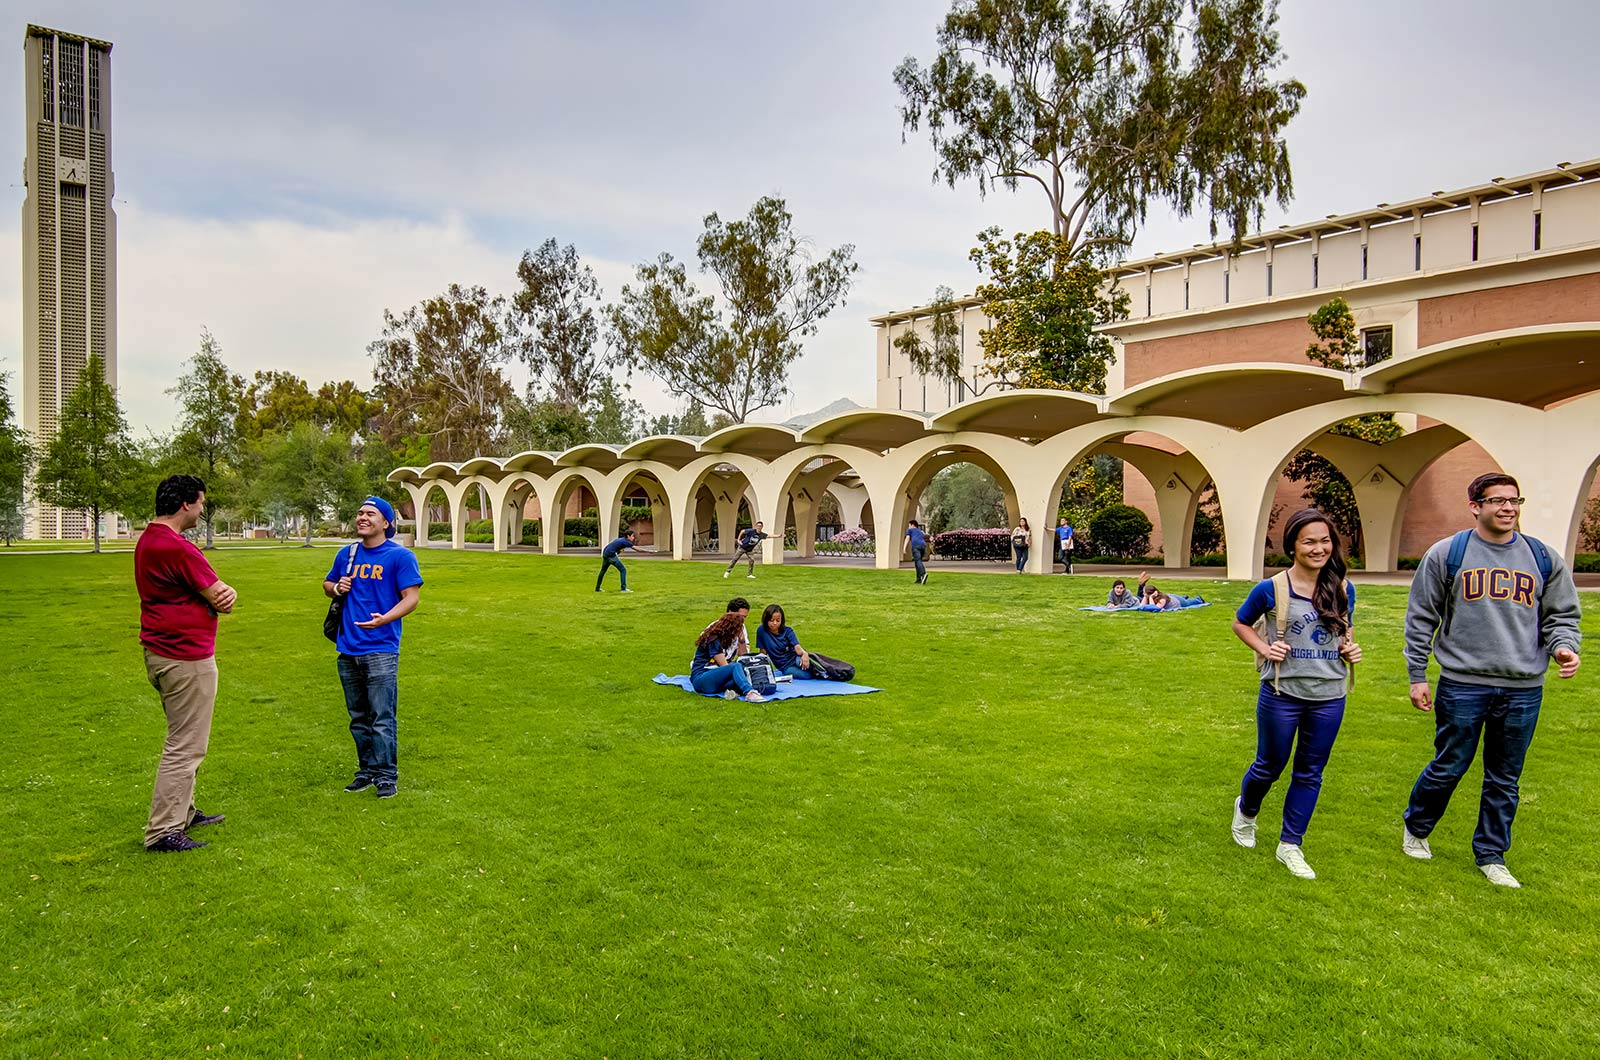 UCR-Social-Space-360-Tours-Virtual-Tour-Company-College-Vitual-Tours-Virtual-Tours-For-College